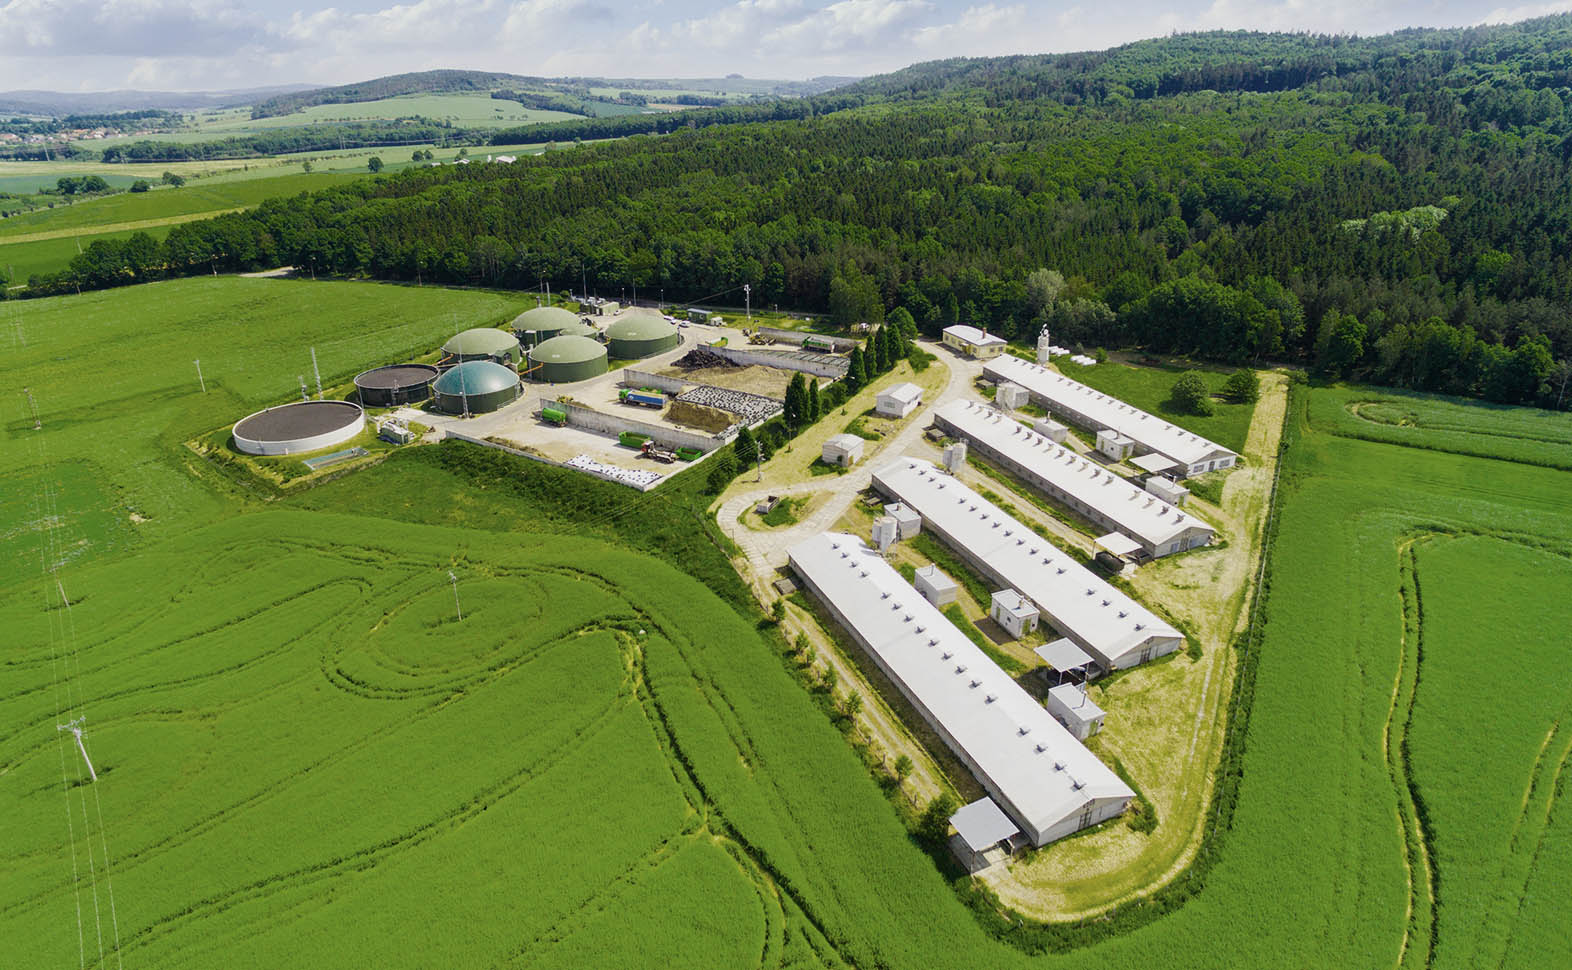 Aerial view over biogas plant and farm in green fields. Renewabl